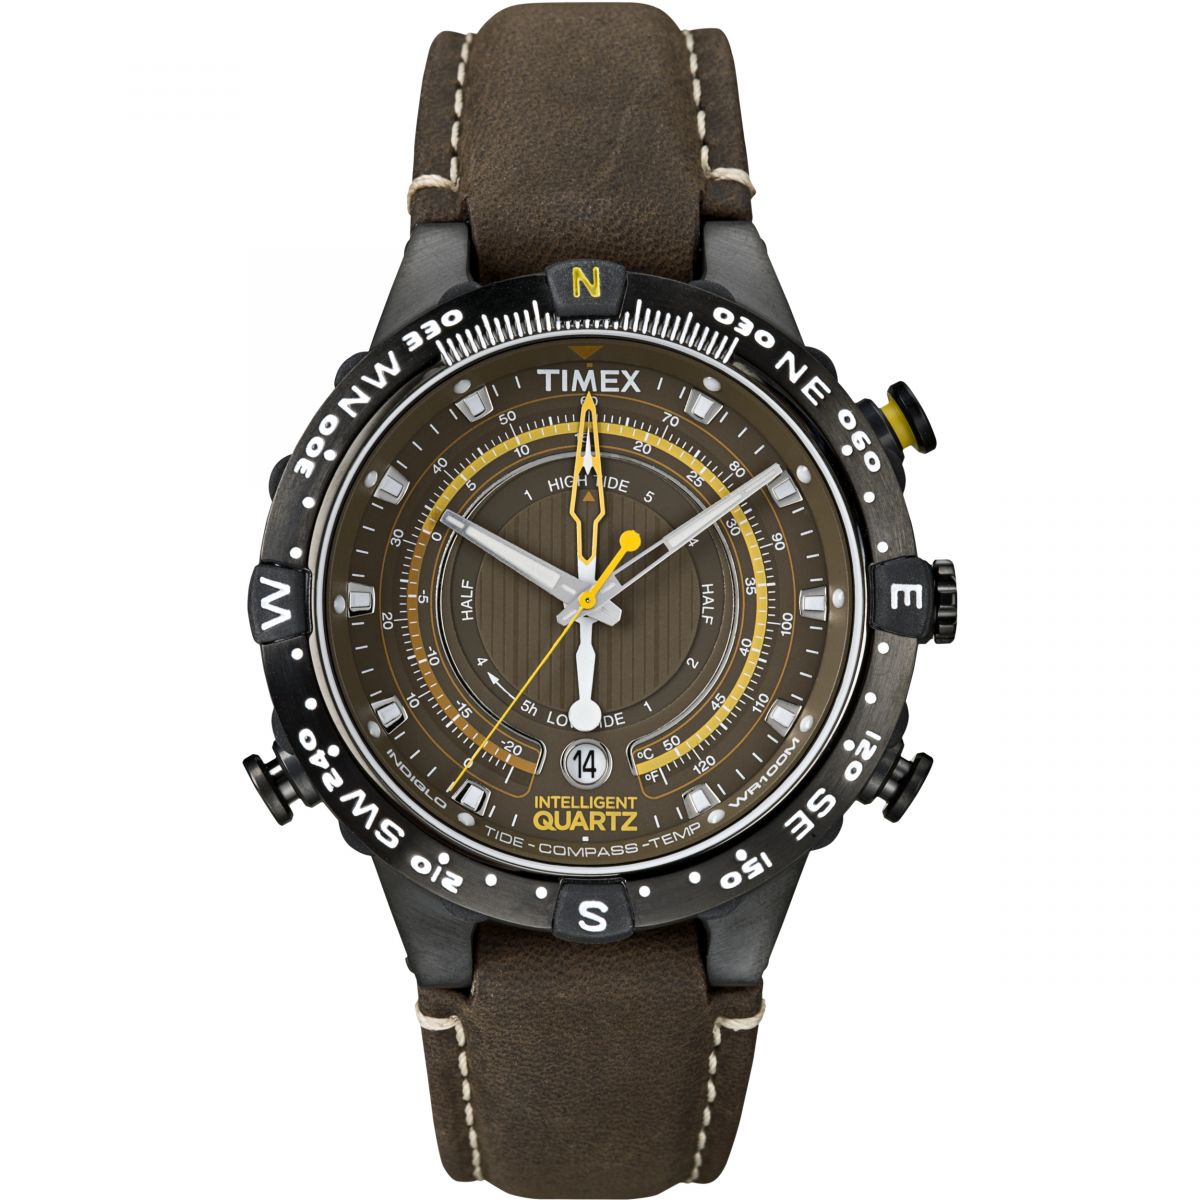 Gents timex tide temp compass watch t2p141 for Watches with compass